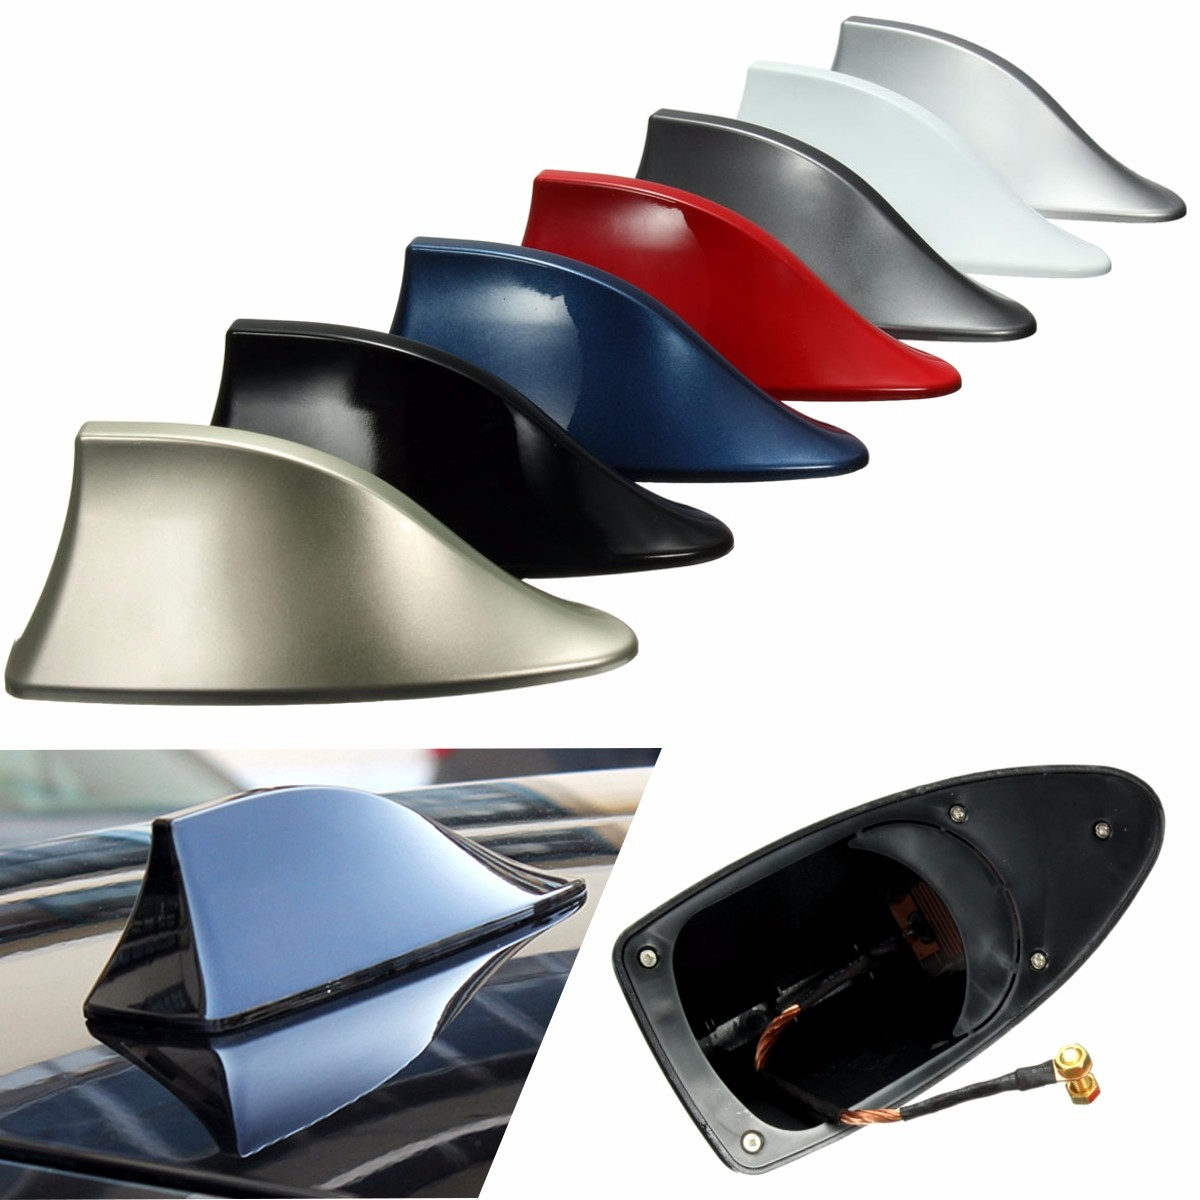 Universal Car Roof Style Shark Fin Antenna Radio Signal Aerials AM/FM For BMW сметан милава 20